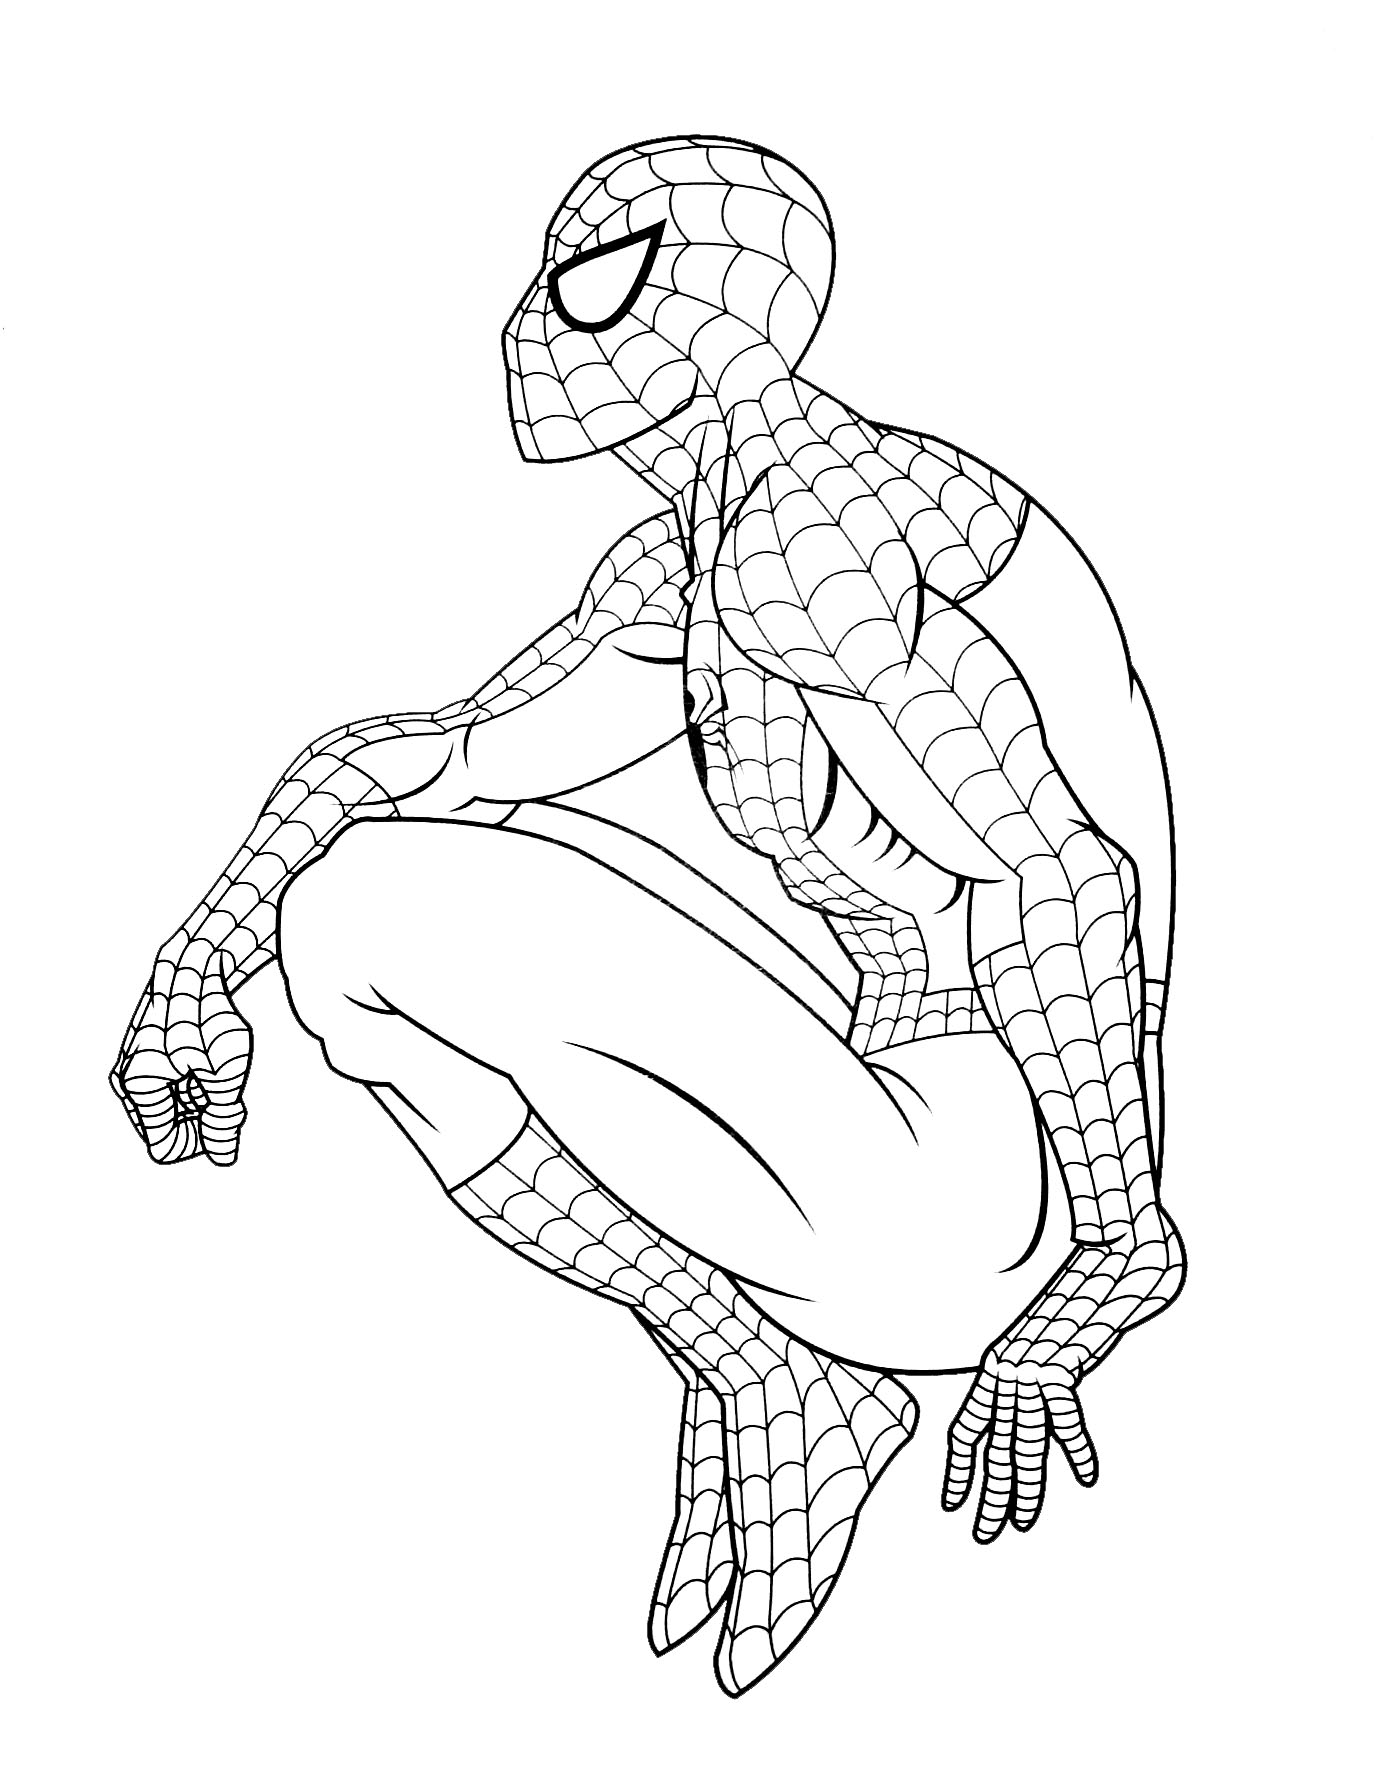 Spiderman to print for free - Spiderman Kids Coloring Pages